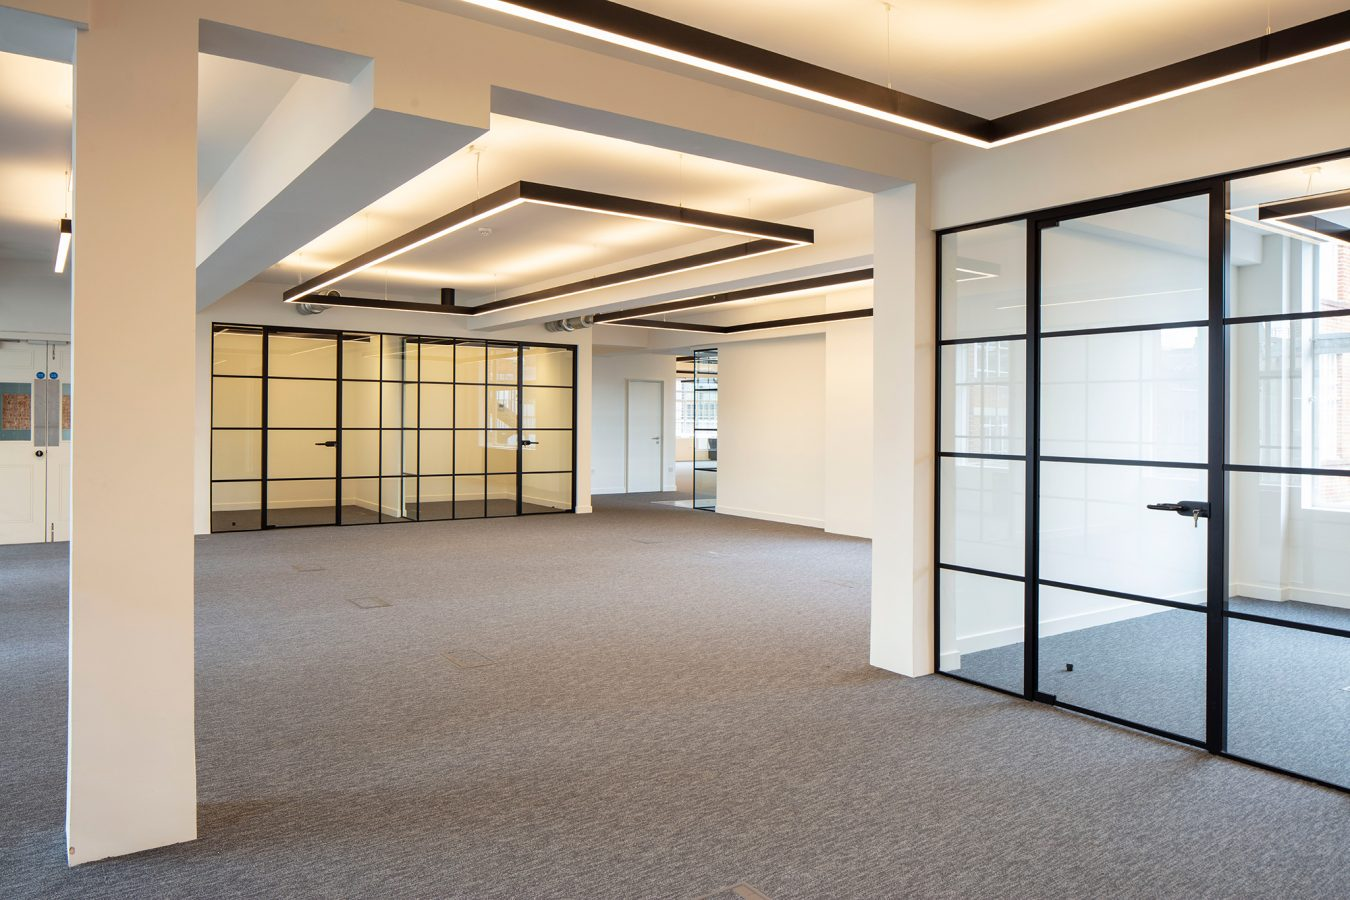 Refurbished space with crittal style glazede partitions and LED lights near Great Titchfield Street